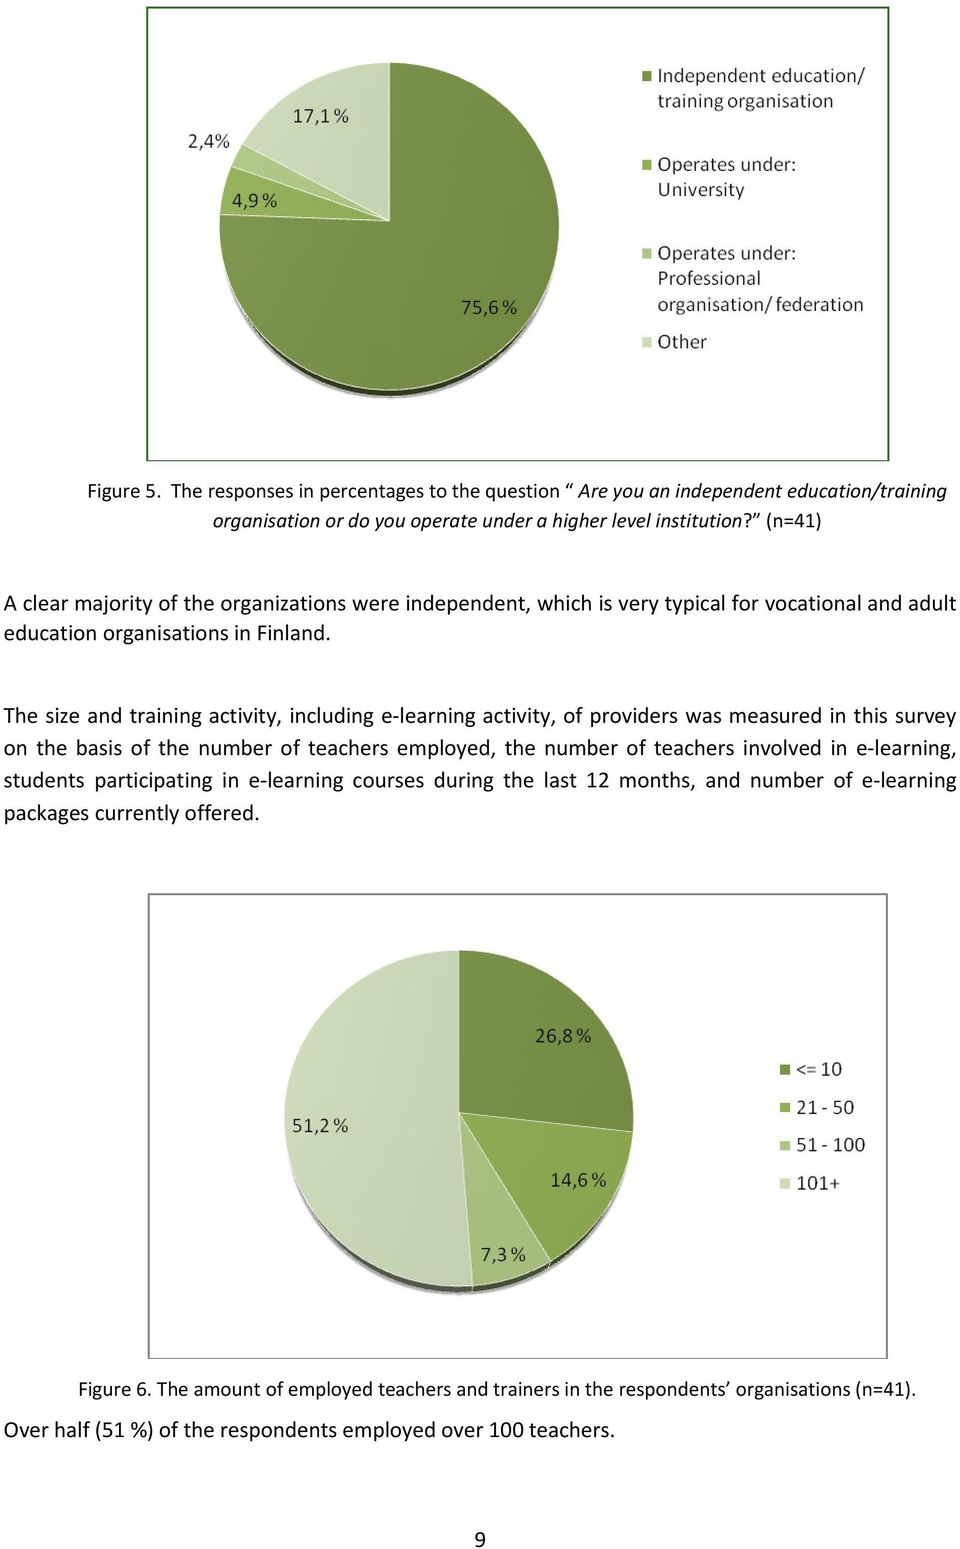 The size and training activity, including e learning activity, of providers was measured in this survey on the basis of the number of teachers employed, the number of teachers involved in e